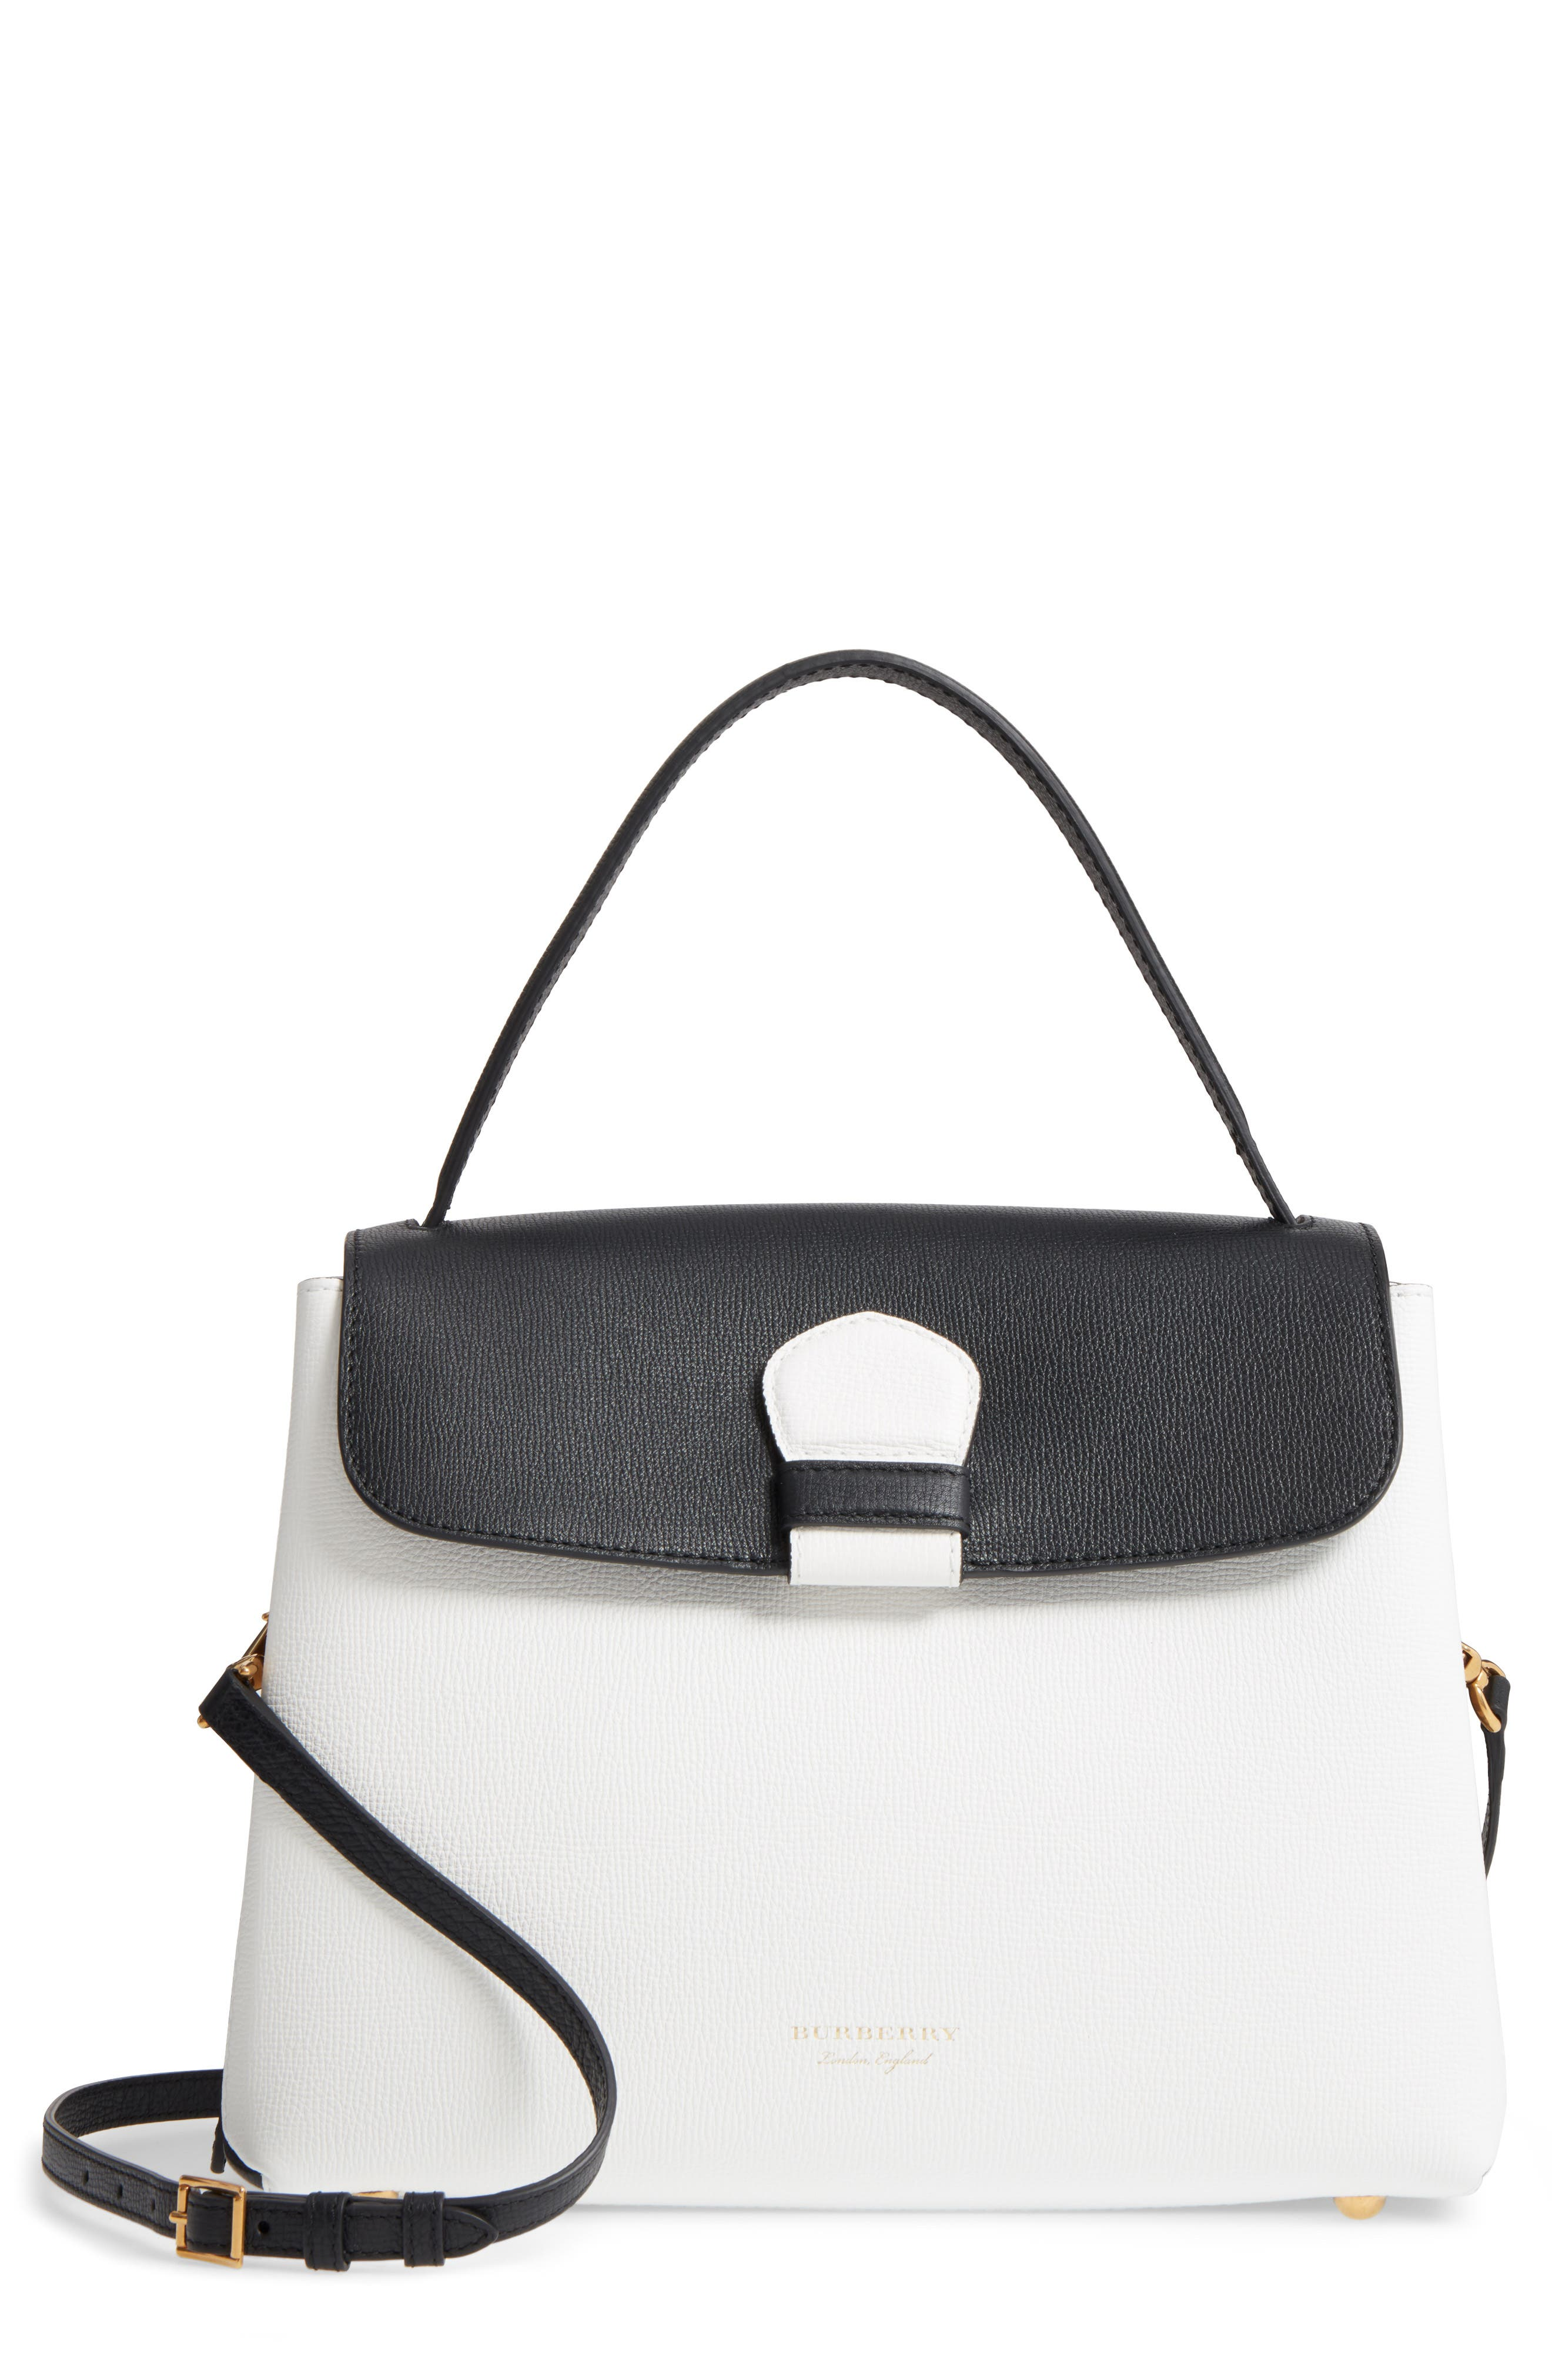 Medium Camberley Colorblock Leather & House Check Top Handle Satchel,                         Main,                         color, WHITE/ BLACK